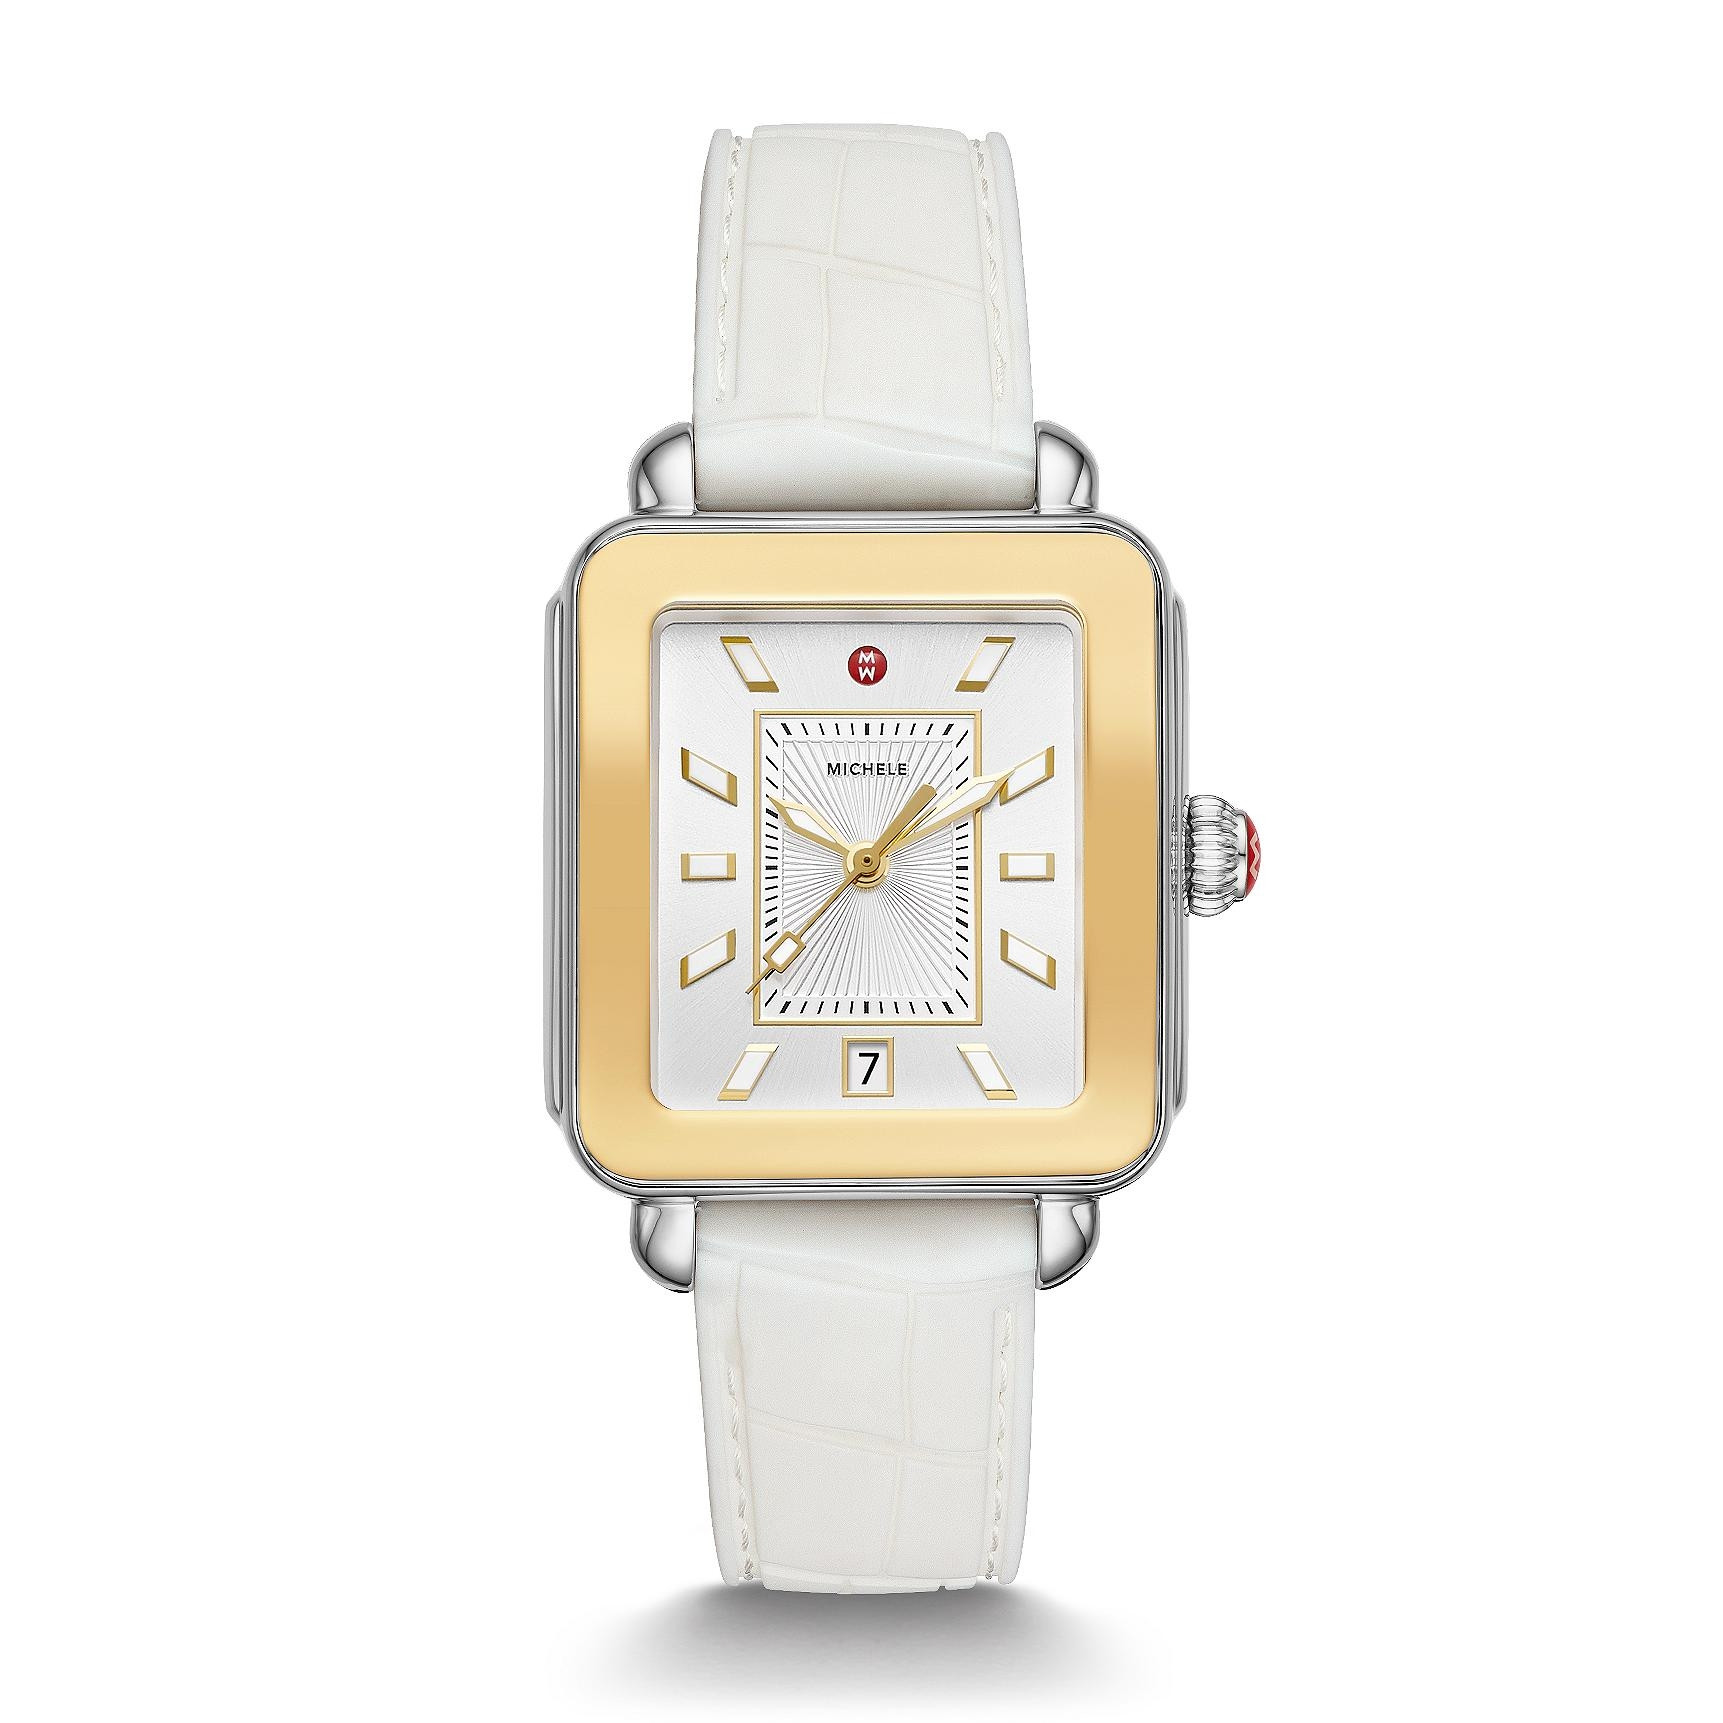 Michele Deco Sport Two Tone Dial White Watch with Yellow Gold front view